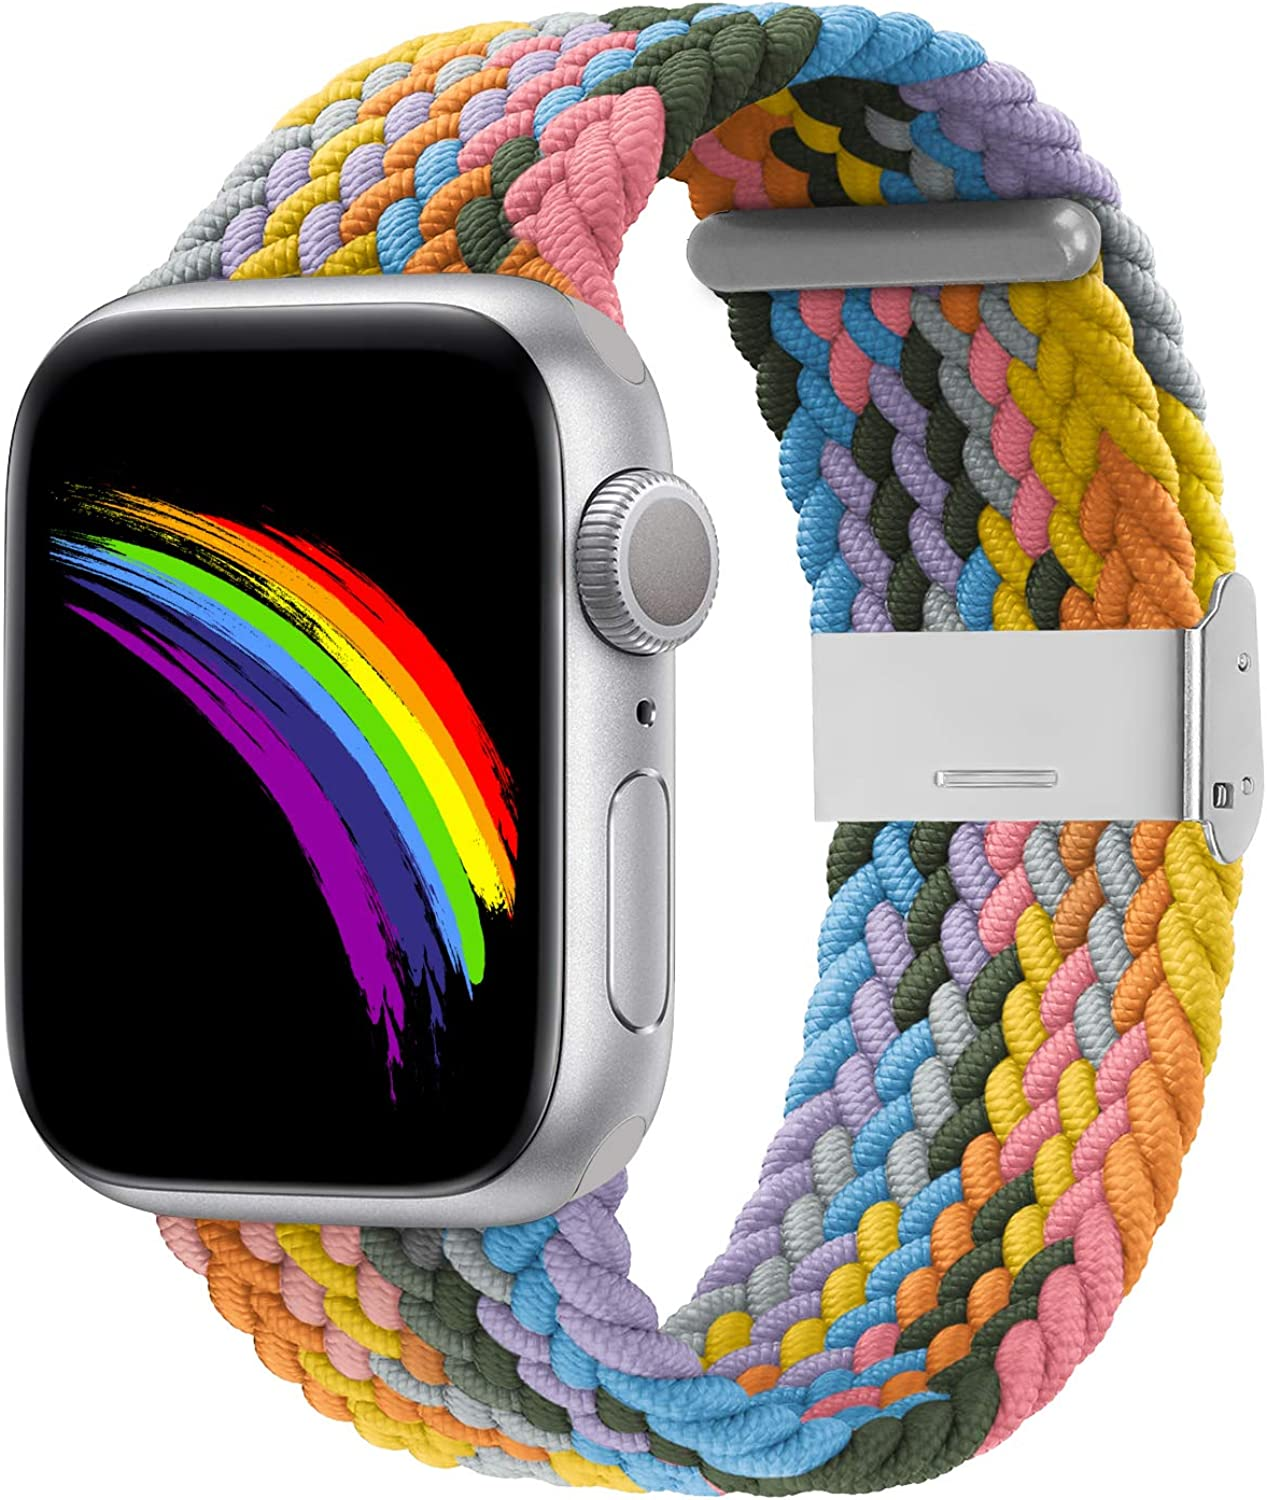 Bagoplus Compatible with Apple Watch iWatch Bands 38mm 40mm 42mm 44mm Women Men, Adjustable Braided Solo Loop Stretchable Elastics Sport Wristband for iWatch Series 6/SE/5/4/3/2/1 with Buckles